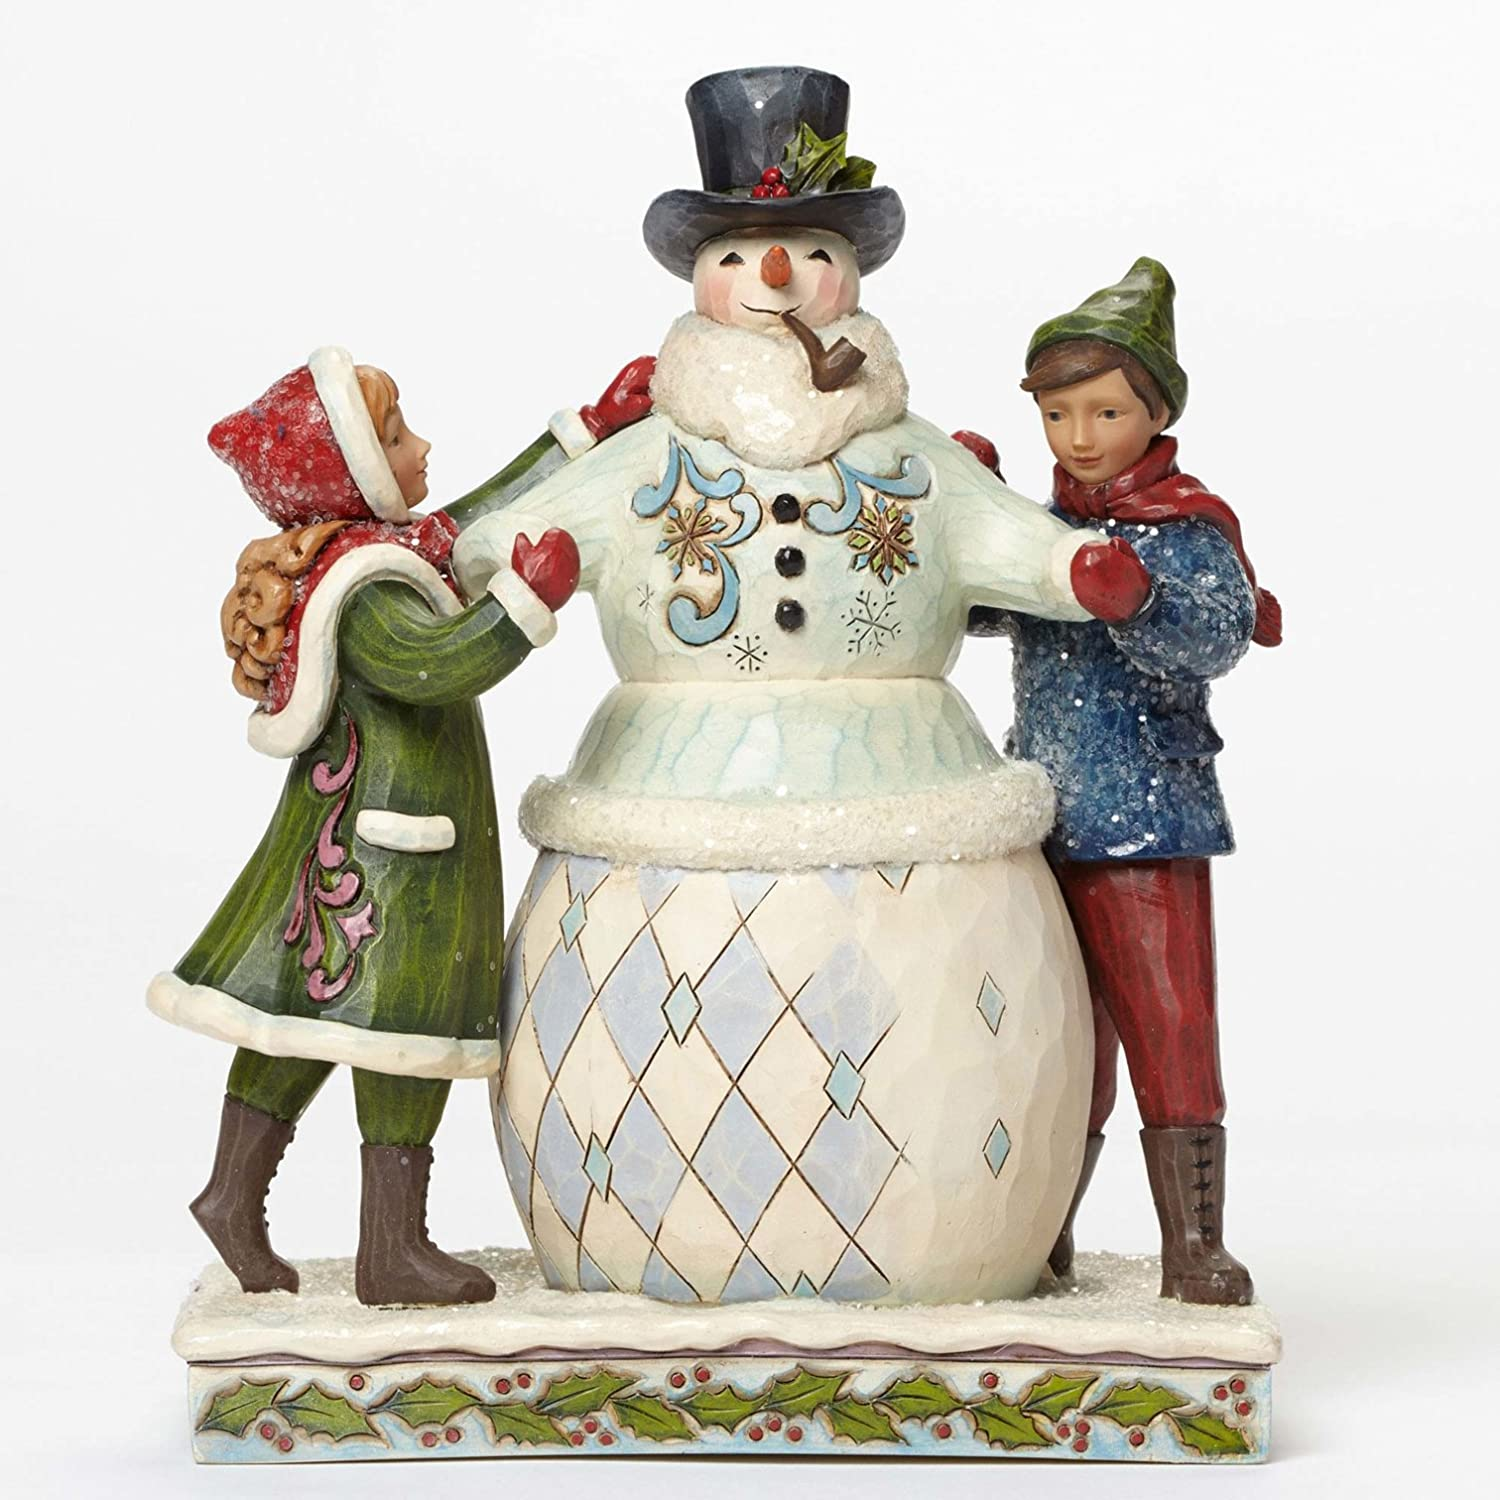 Jim Shore for Enesco Heartwood Creek Victorian Children Building a Snowman Figurine